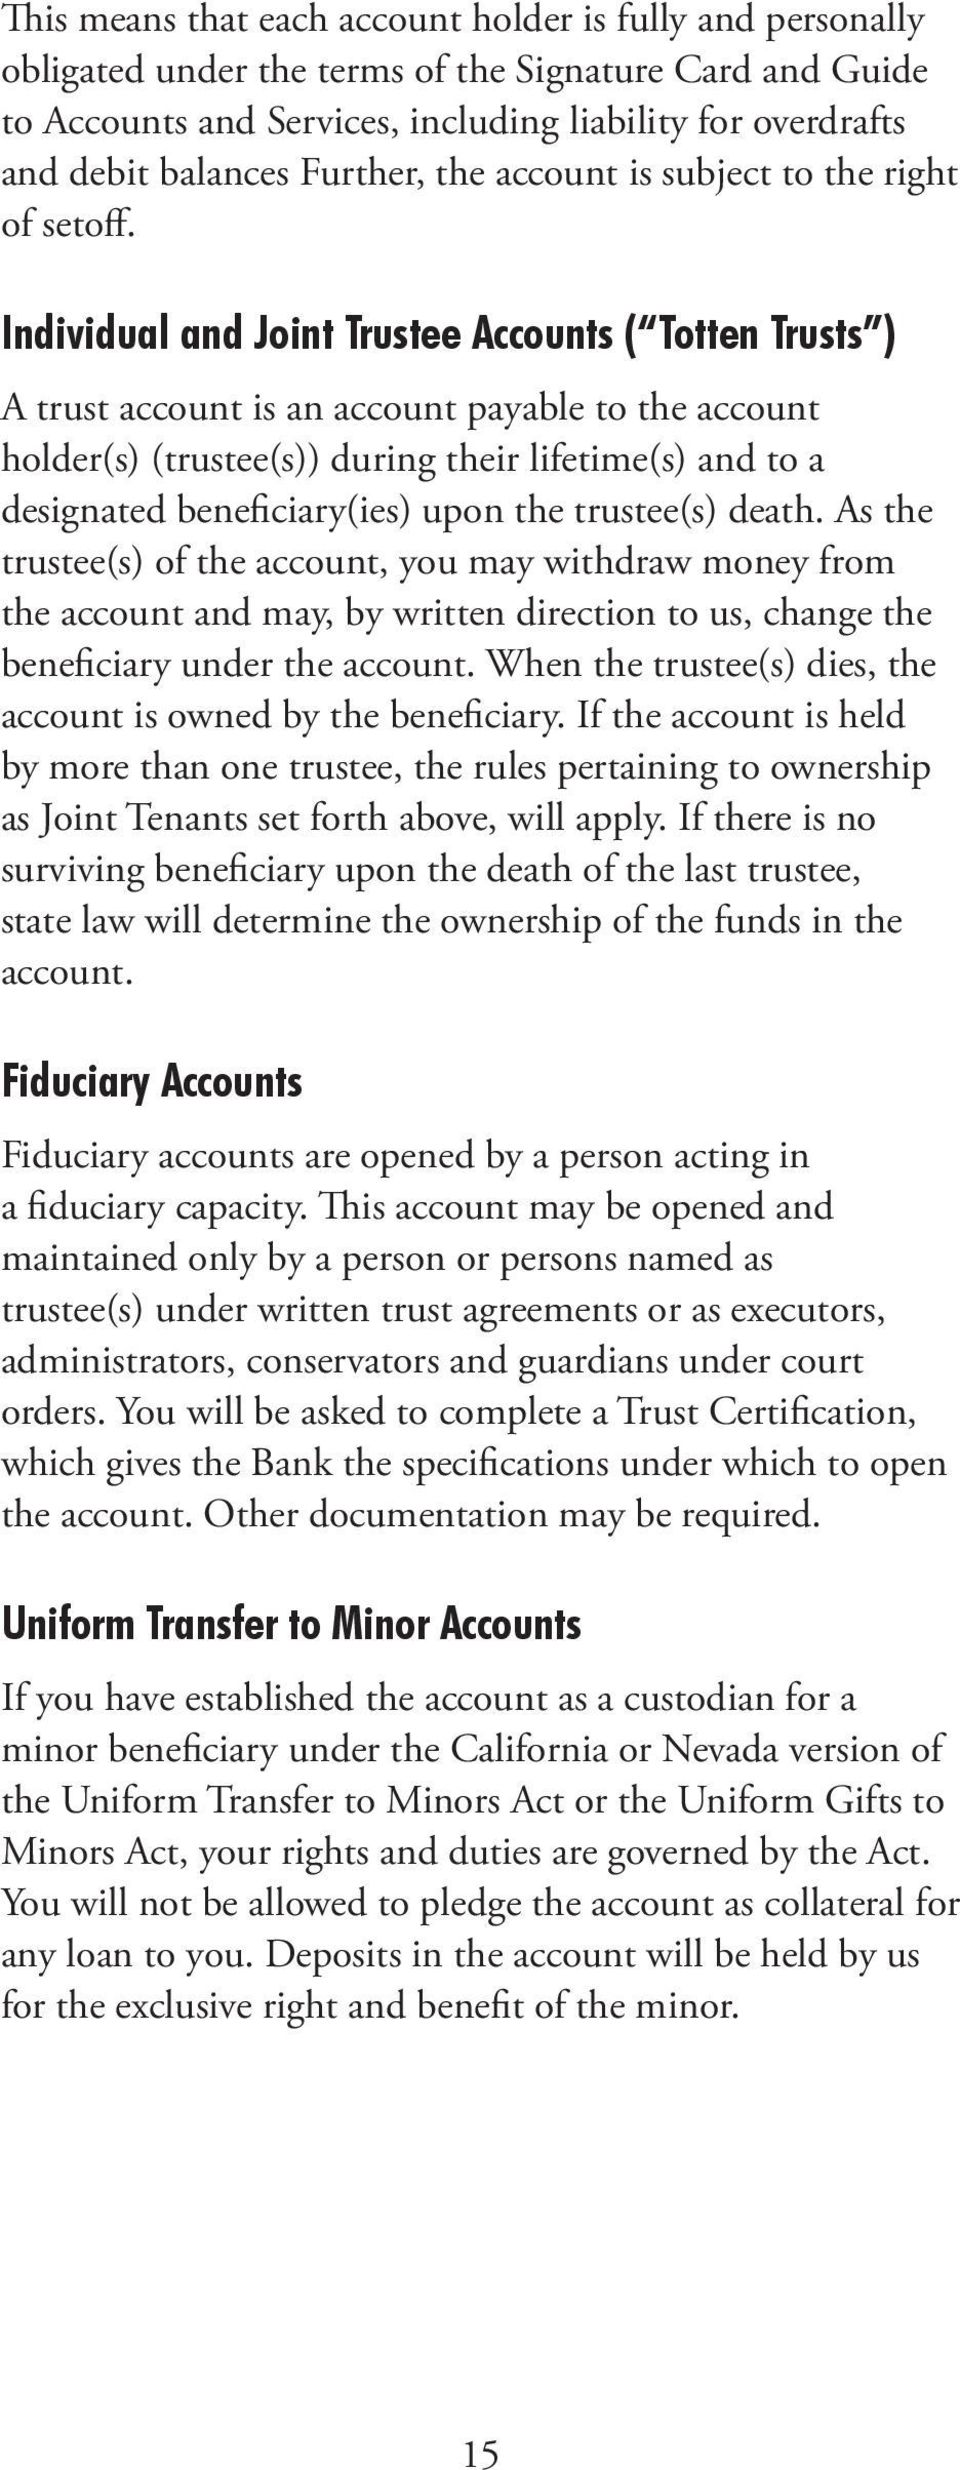 Individual and Joint Trustee Accounts ( Totten Trusts ) A trust account is an account payable to the account holder(s) (trustee(s)) during their lifetime(s) and to a designated beneficiary(ies) upon